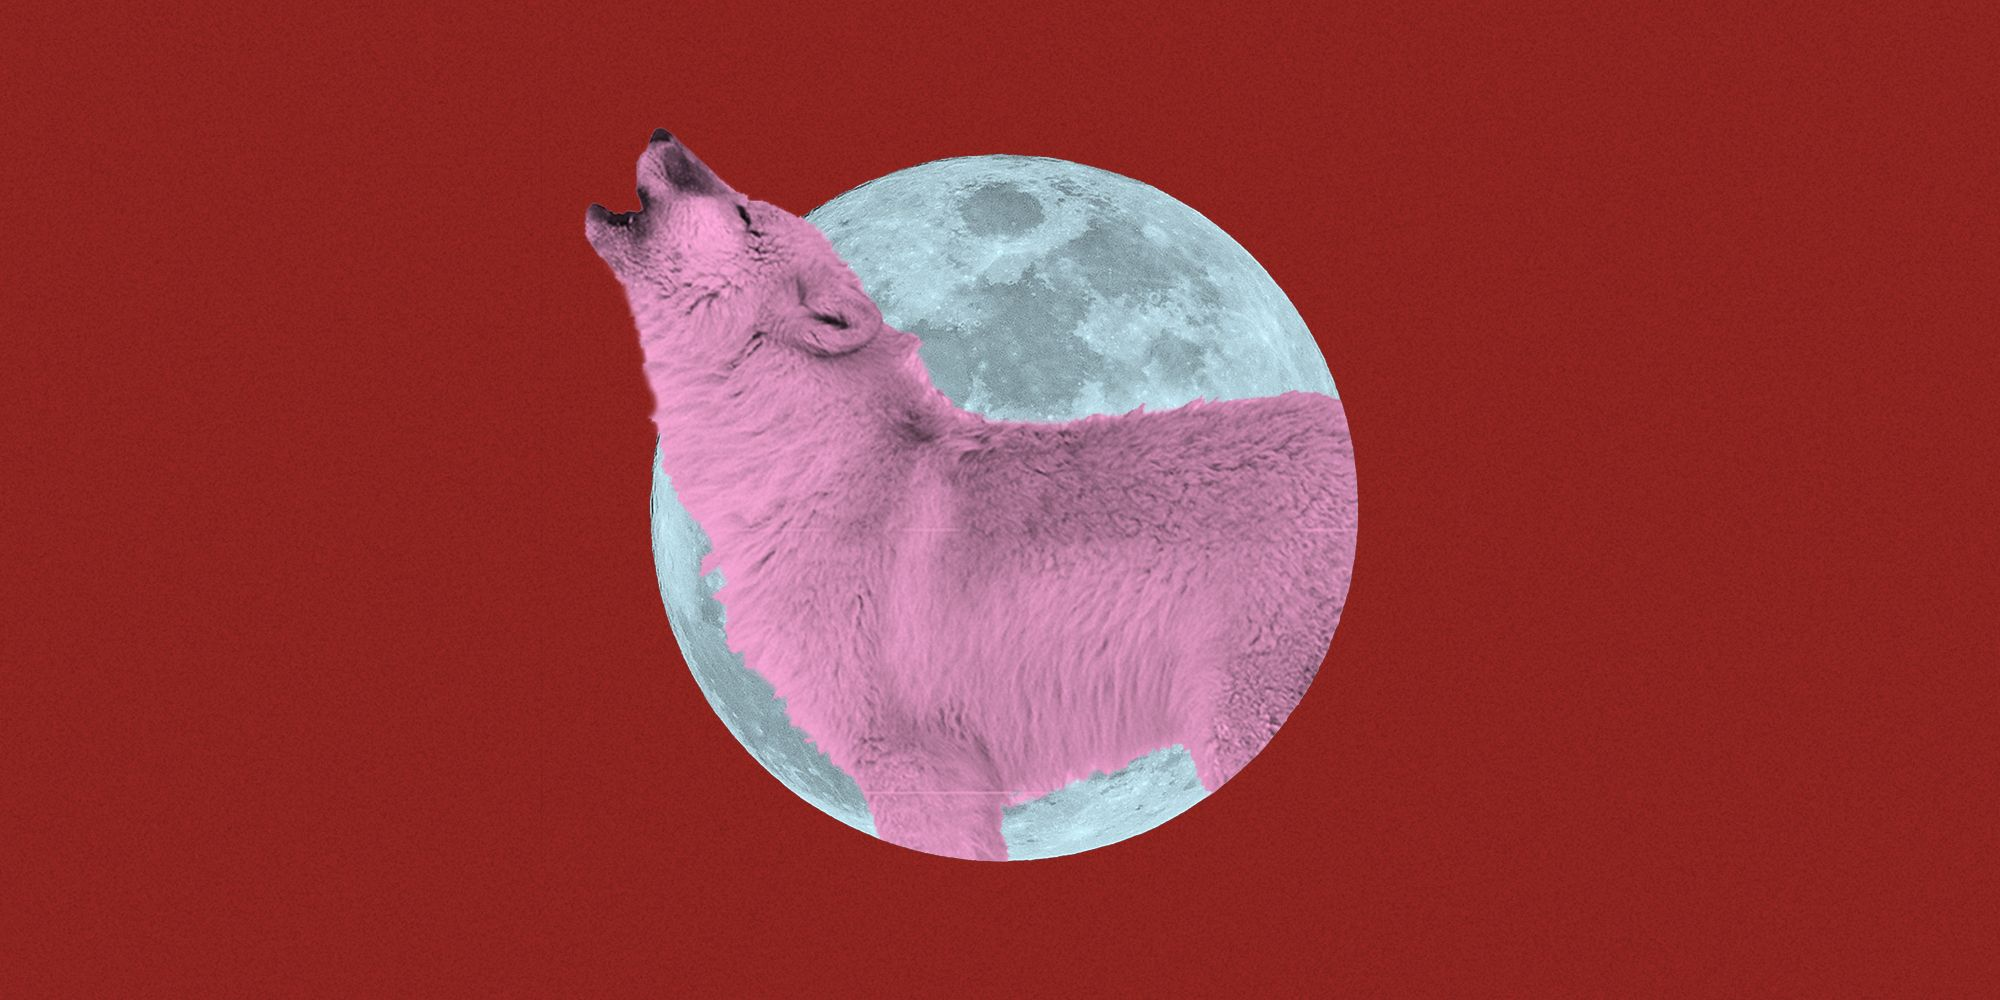 How the January 21 Super Blood Wolf Full Moon Lunar Eclipse Could Shift the Balance of Power as We Know It